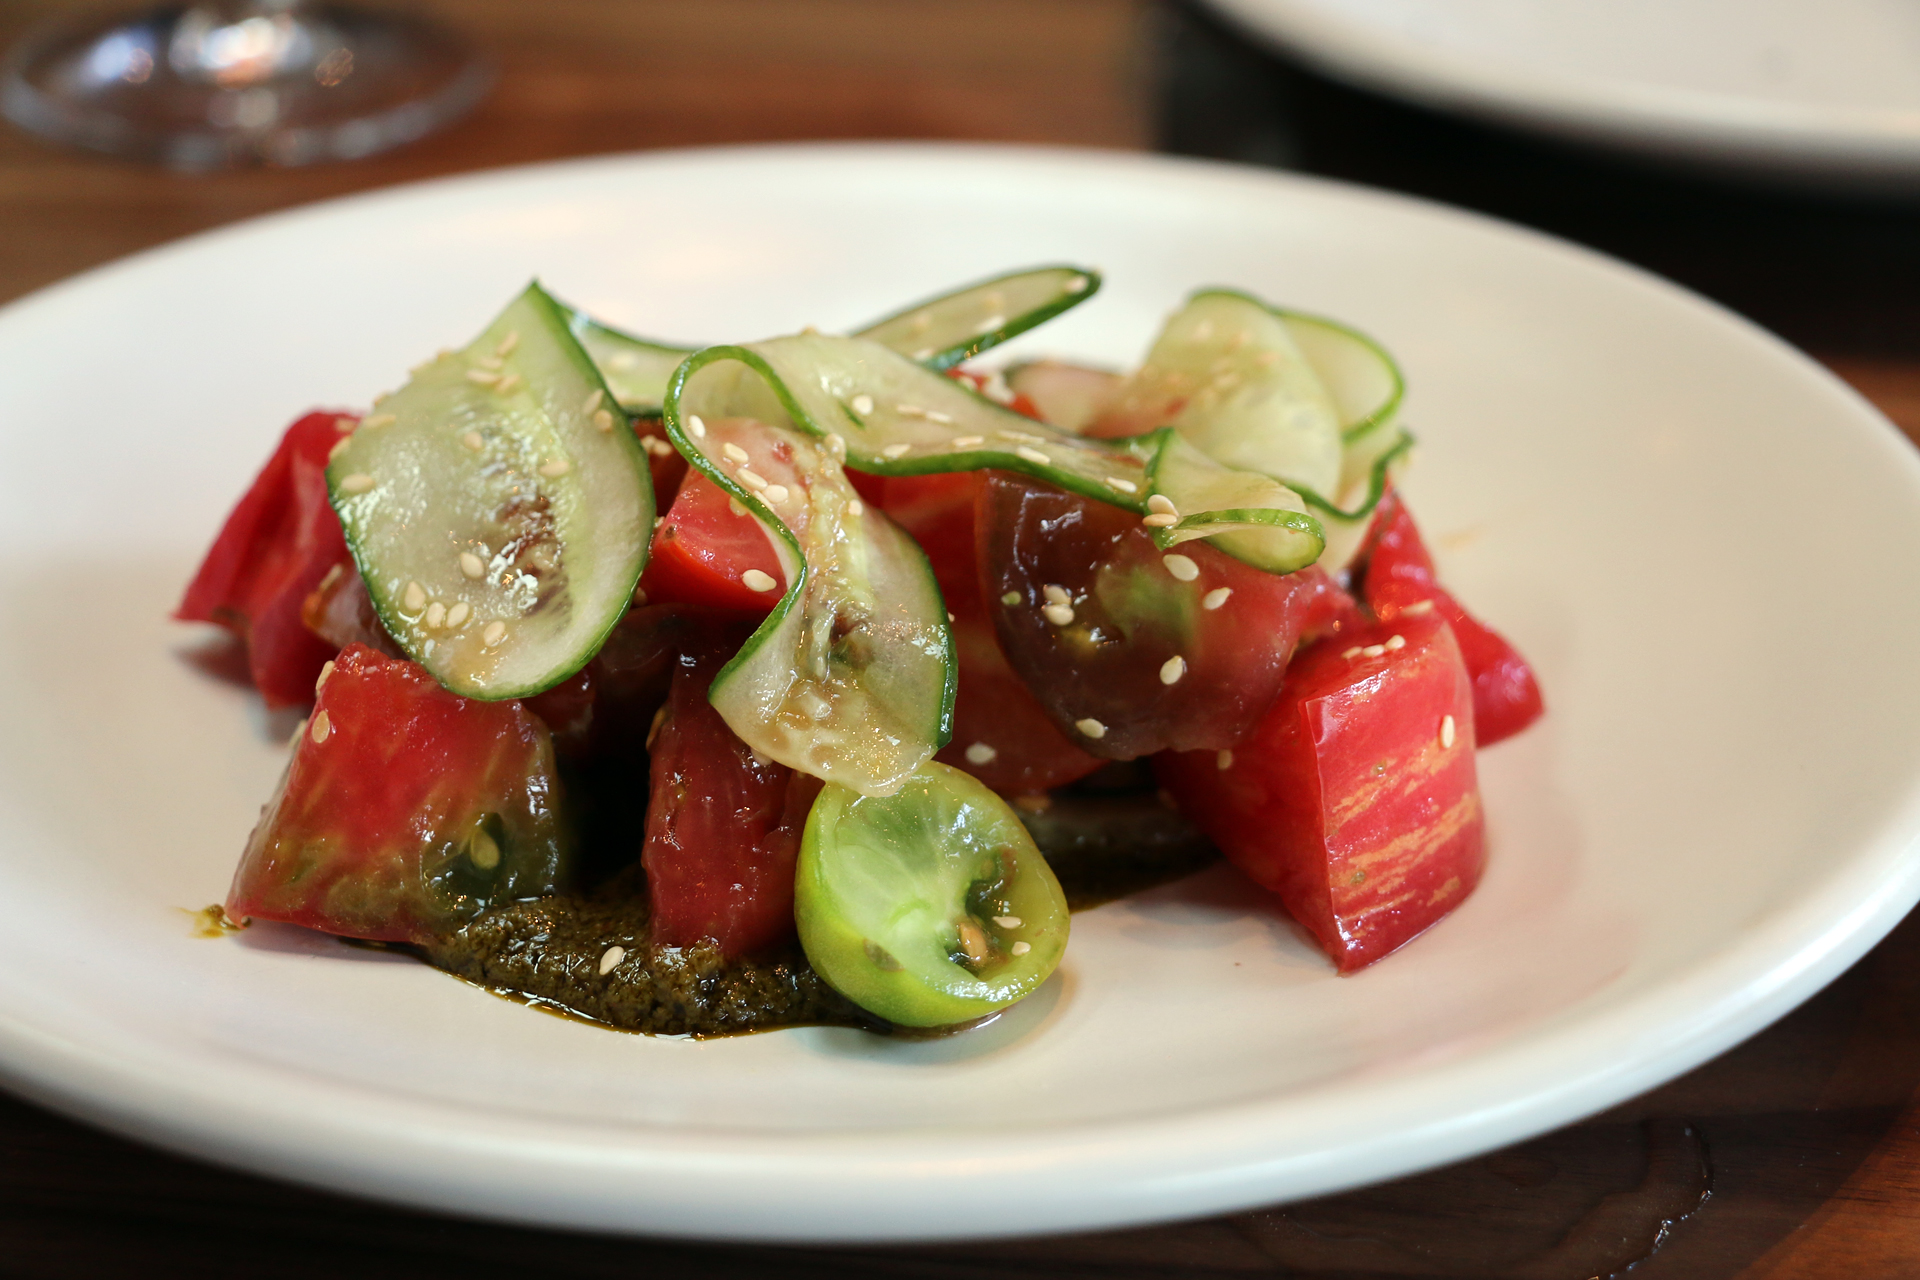 Tomato salad with anchovy-sesame sauce.